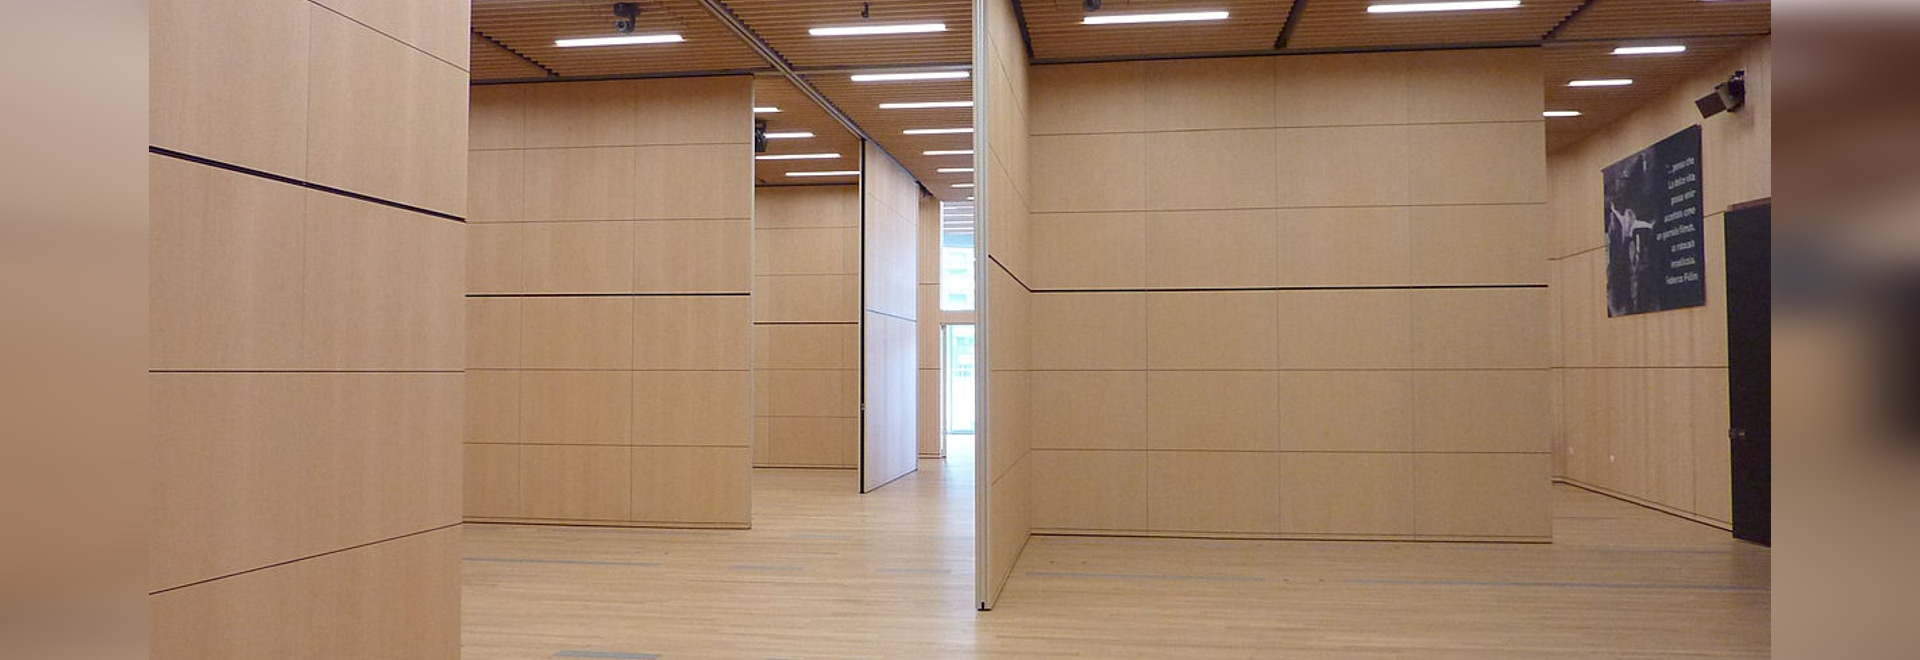 Movable sound-insulated walls